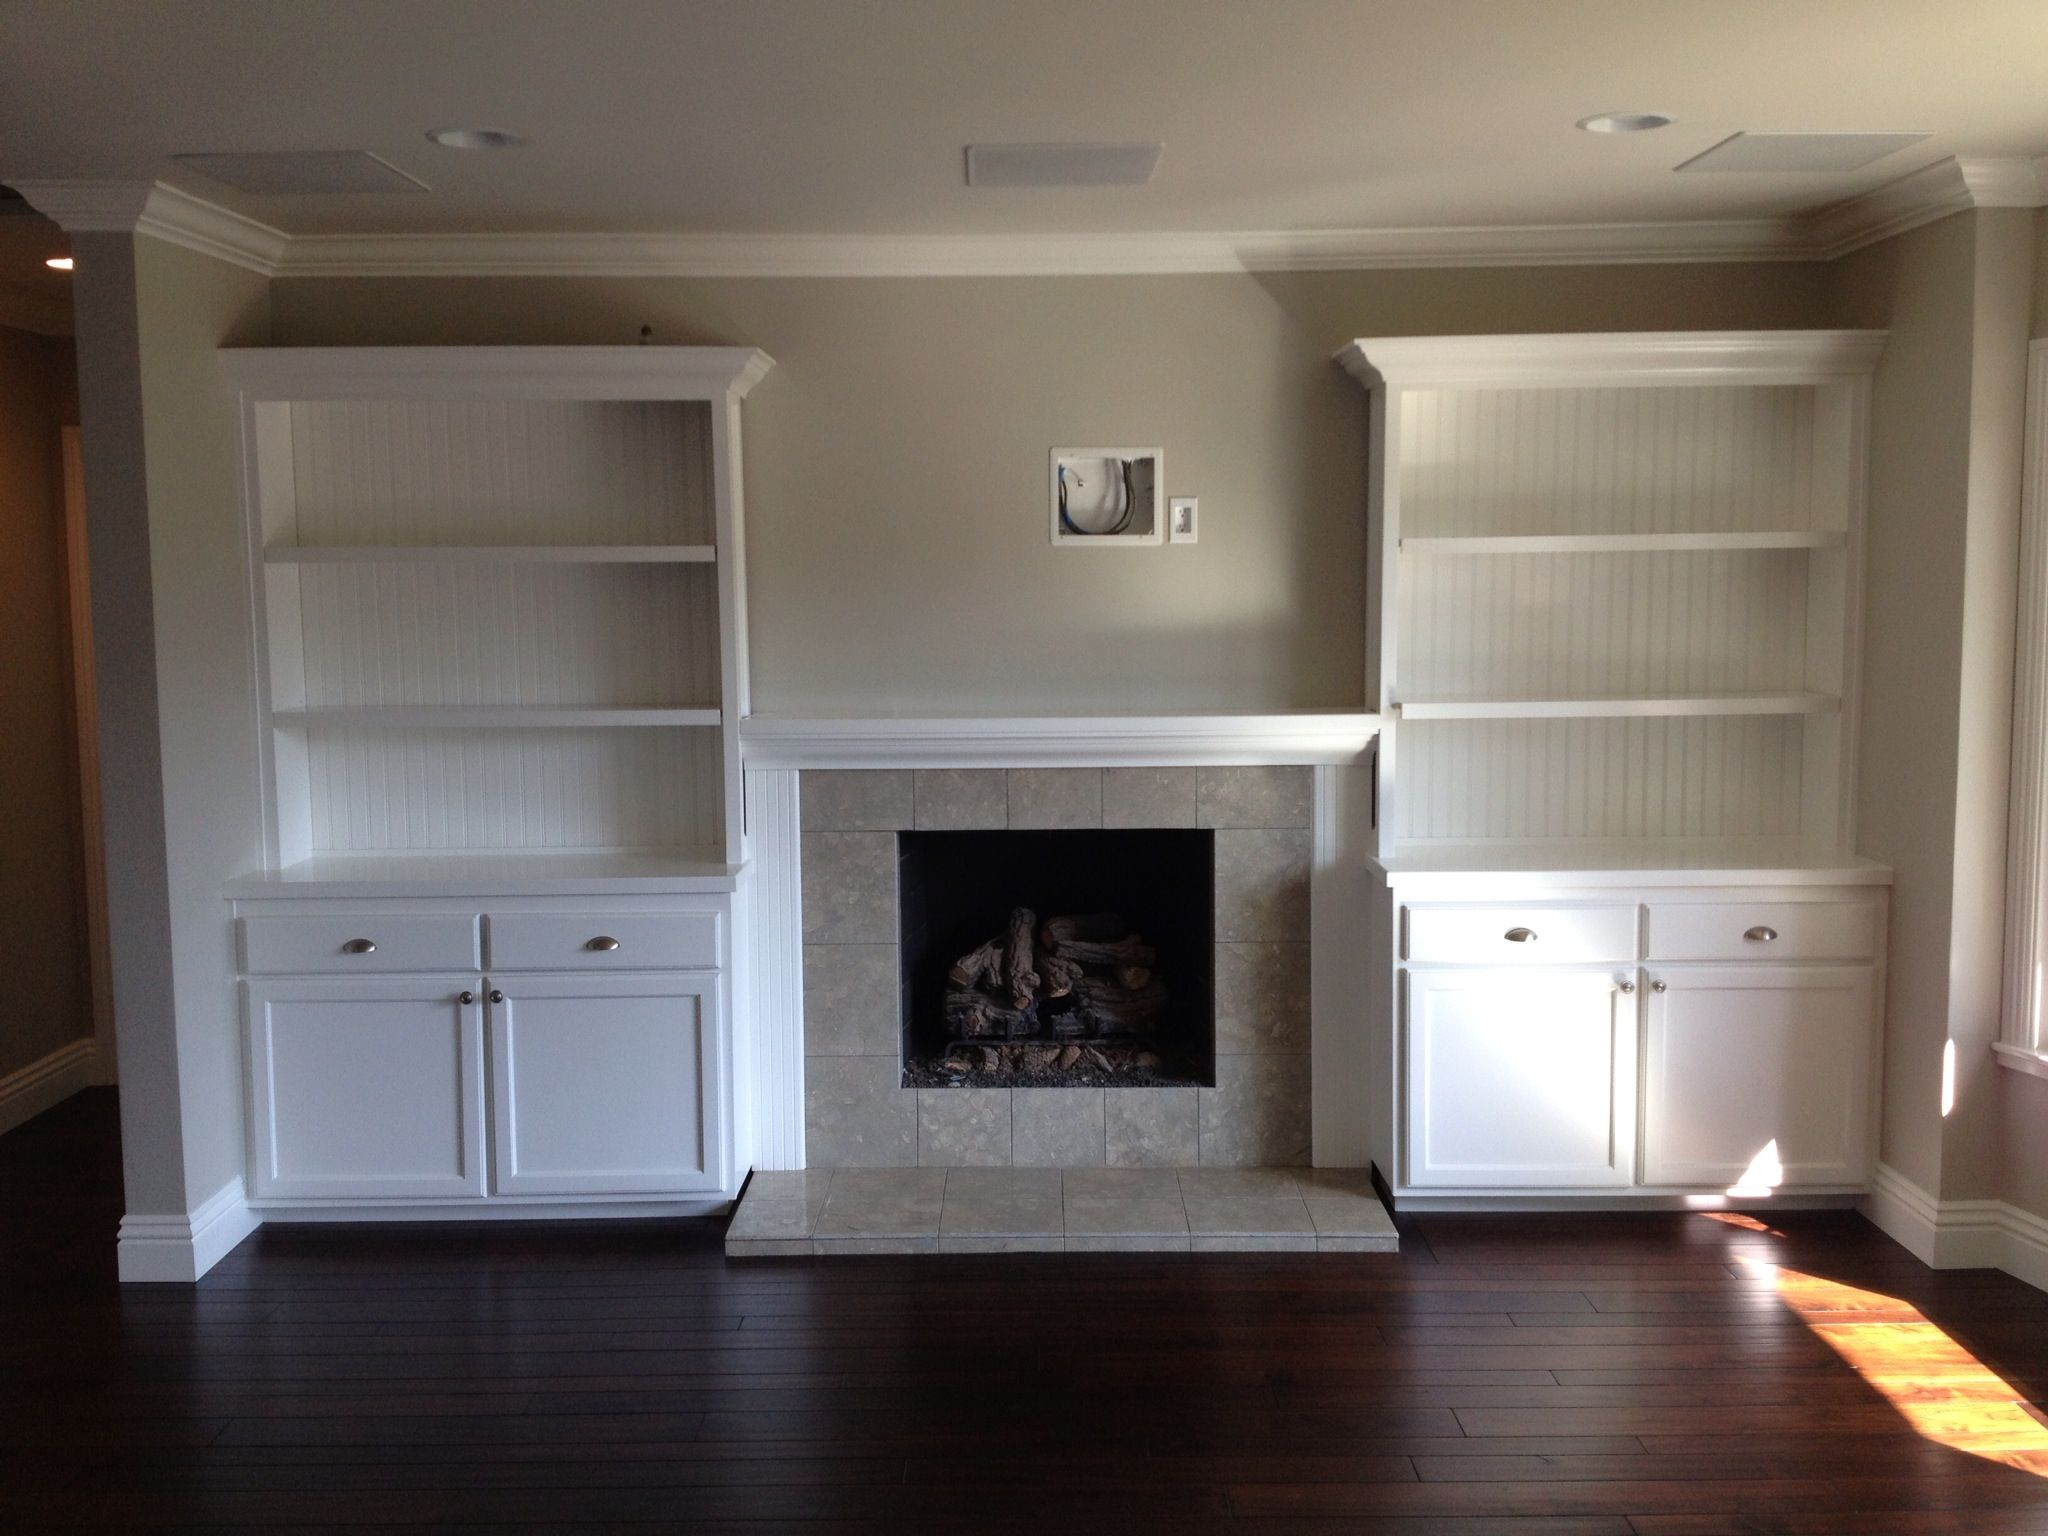 Built in cabinets around fireplace for the home in